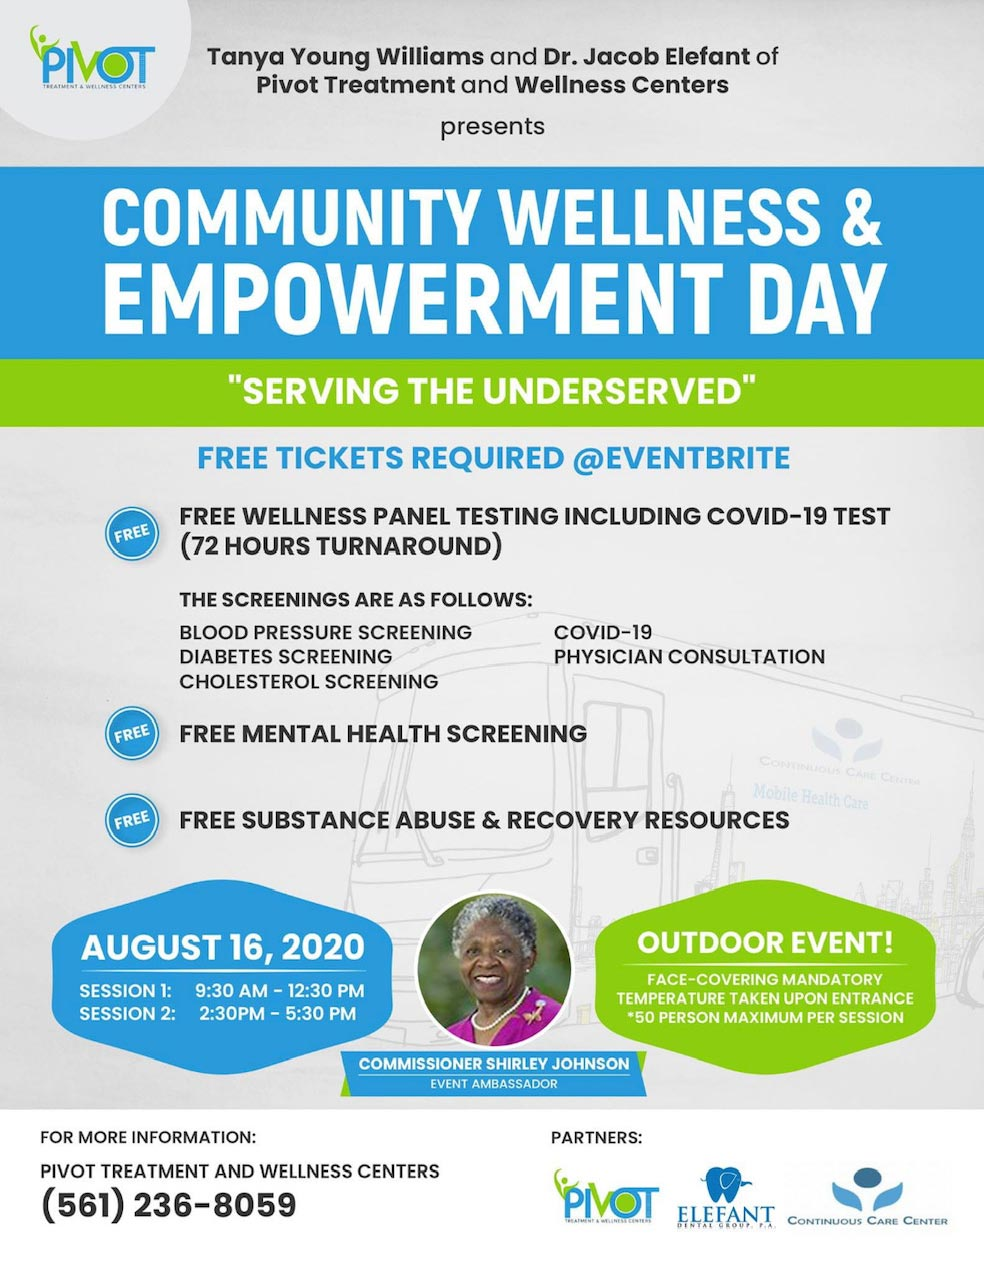 Community Wellness & Empowerment Day